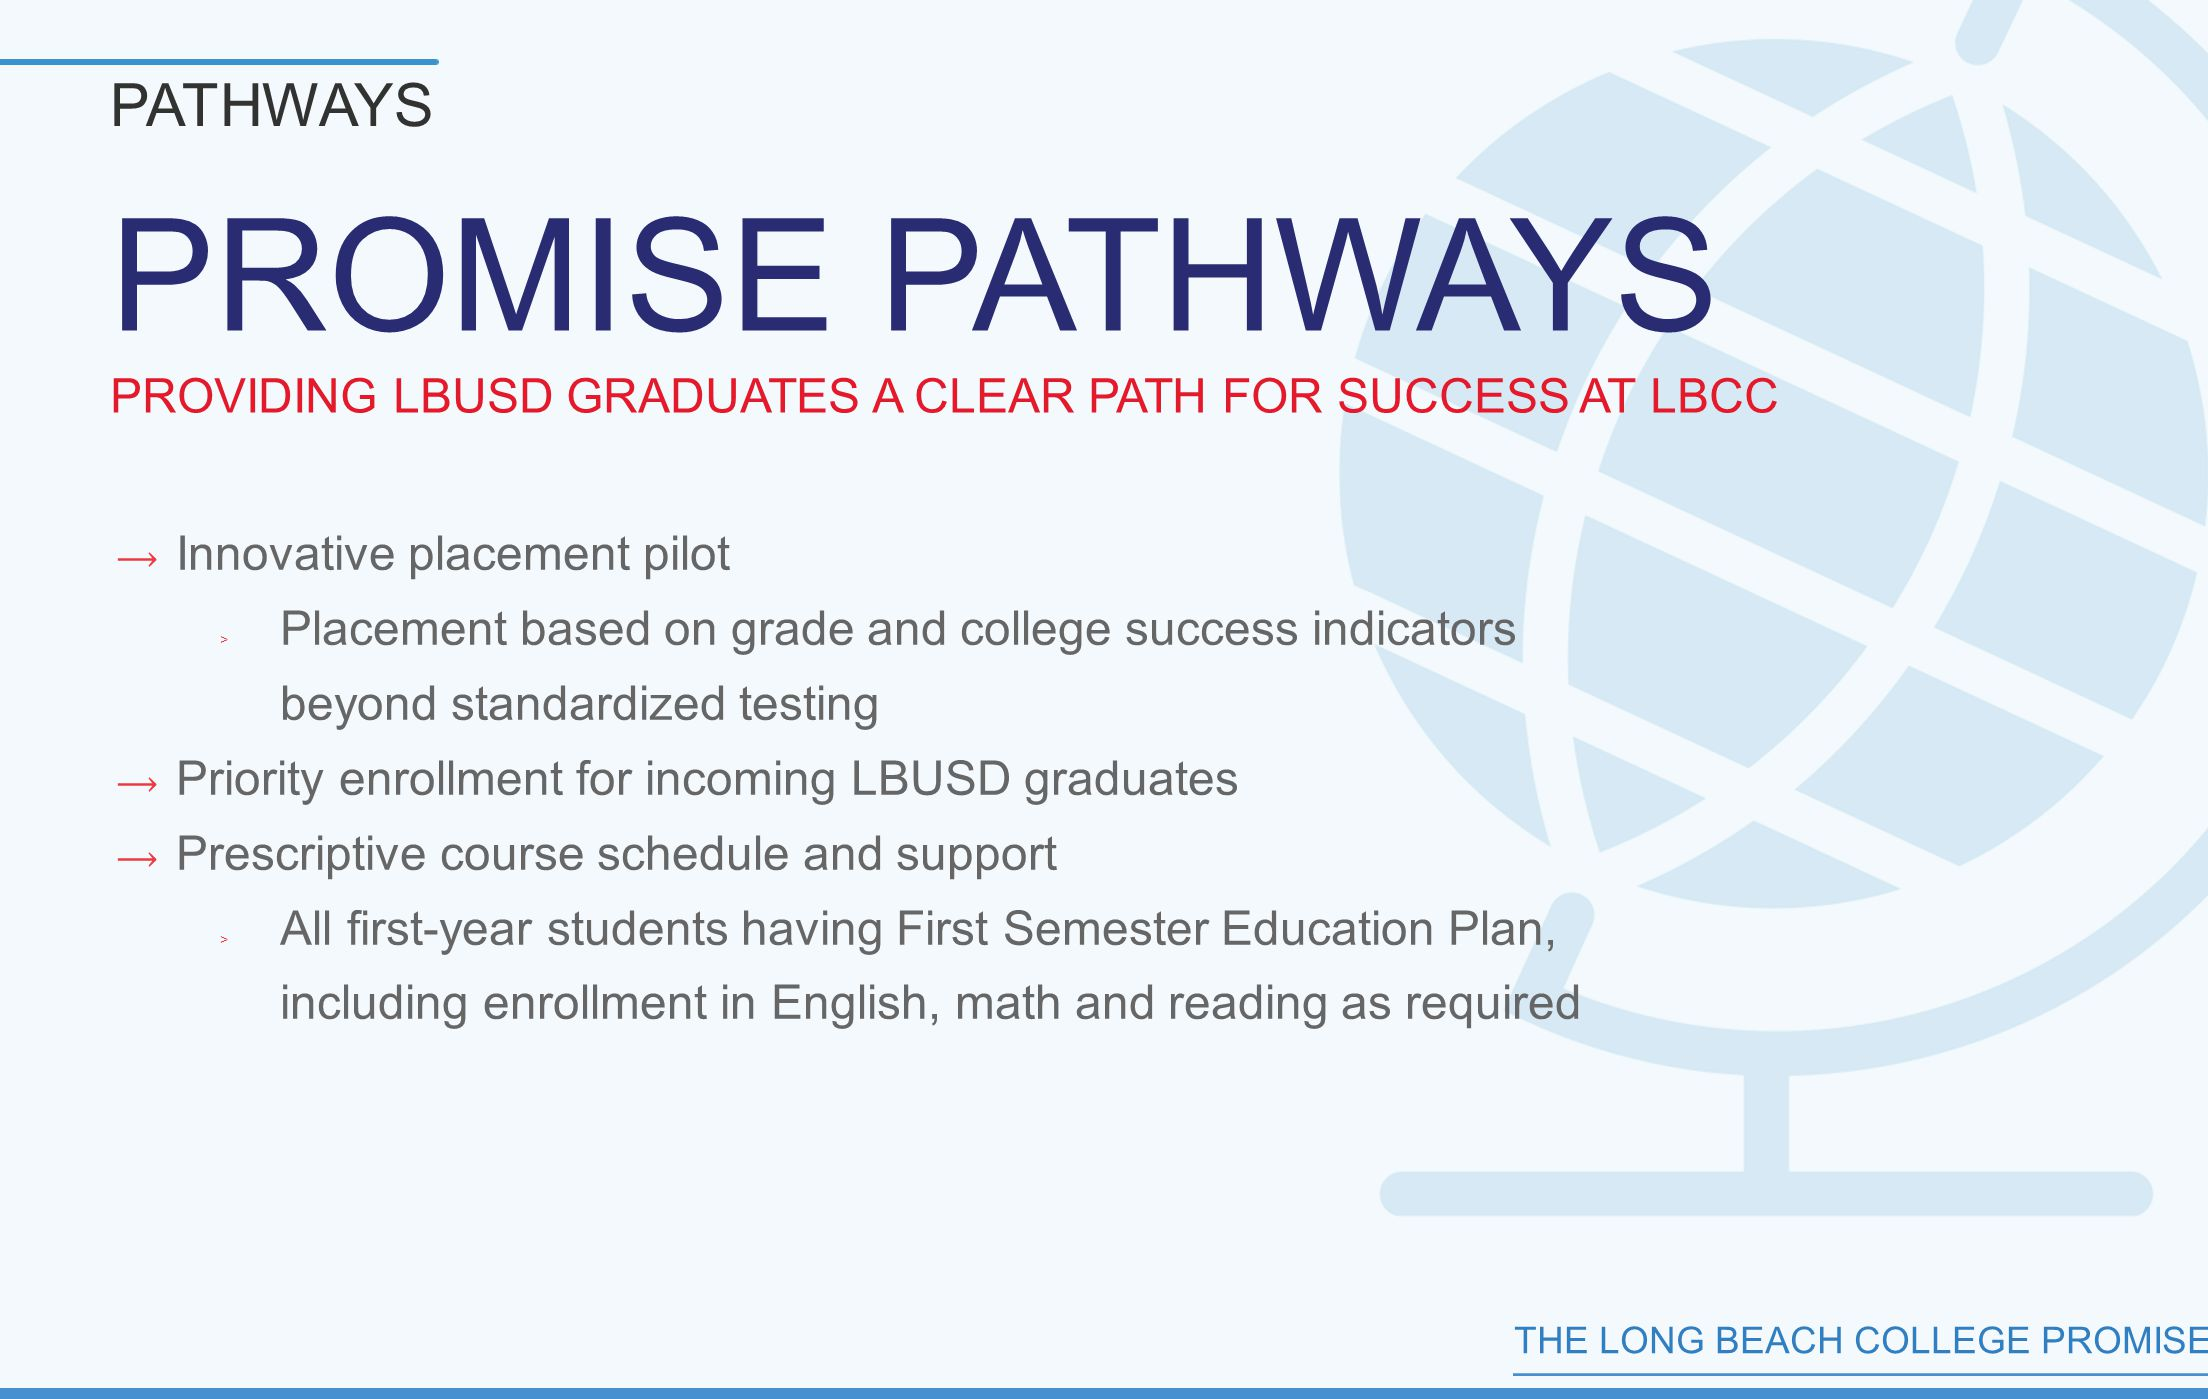 THE LONG BEACH COLLEGE PROMISE PROMISE PATHWAYS PROVIDING LBUSD GRADUATES A CLEAR PATH FOR SUCCESS AT LBCC PATHWAYS  Innovative placement pilot ﹥ Placement based on grade and college success indicators beyond standardized testing  Priority enrollment for incoming LBUSD graduates  Prescriptive course schedule and support ﹥ All first-year students having First Semester Education Plan, including enrollment in English, math and reading as required